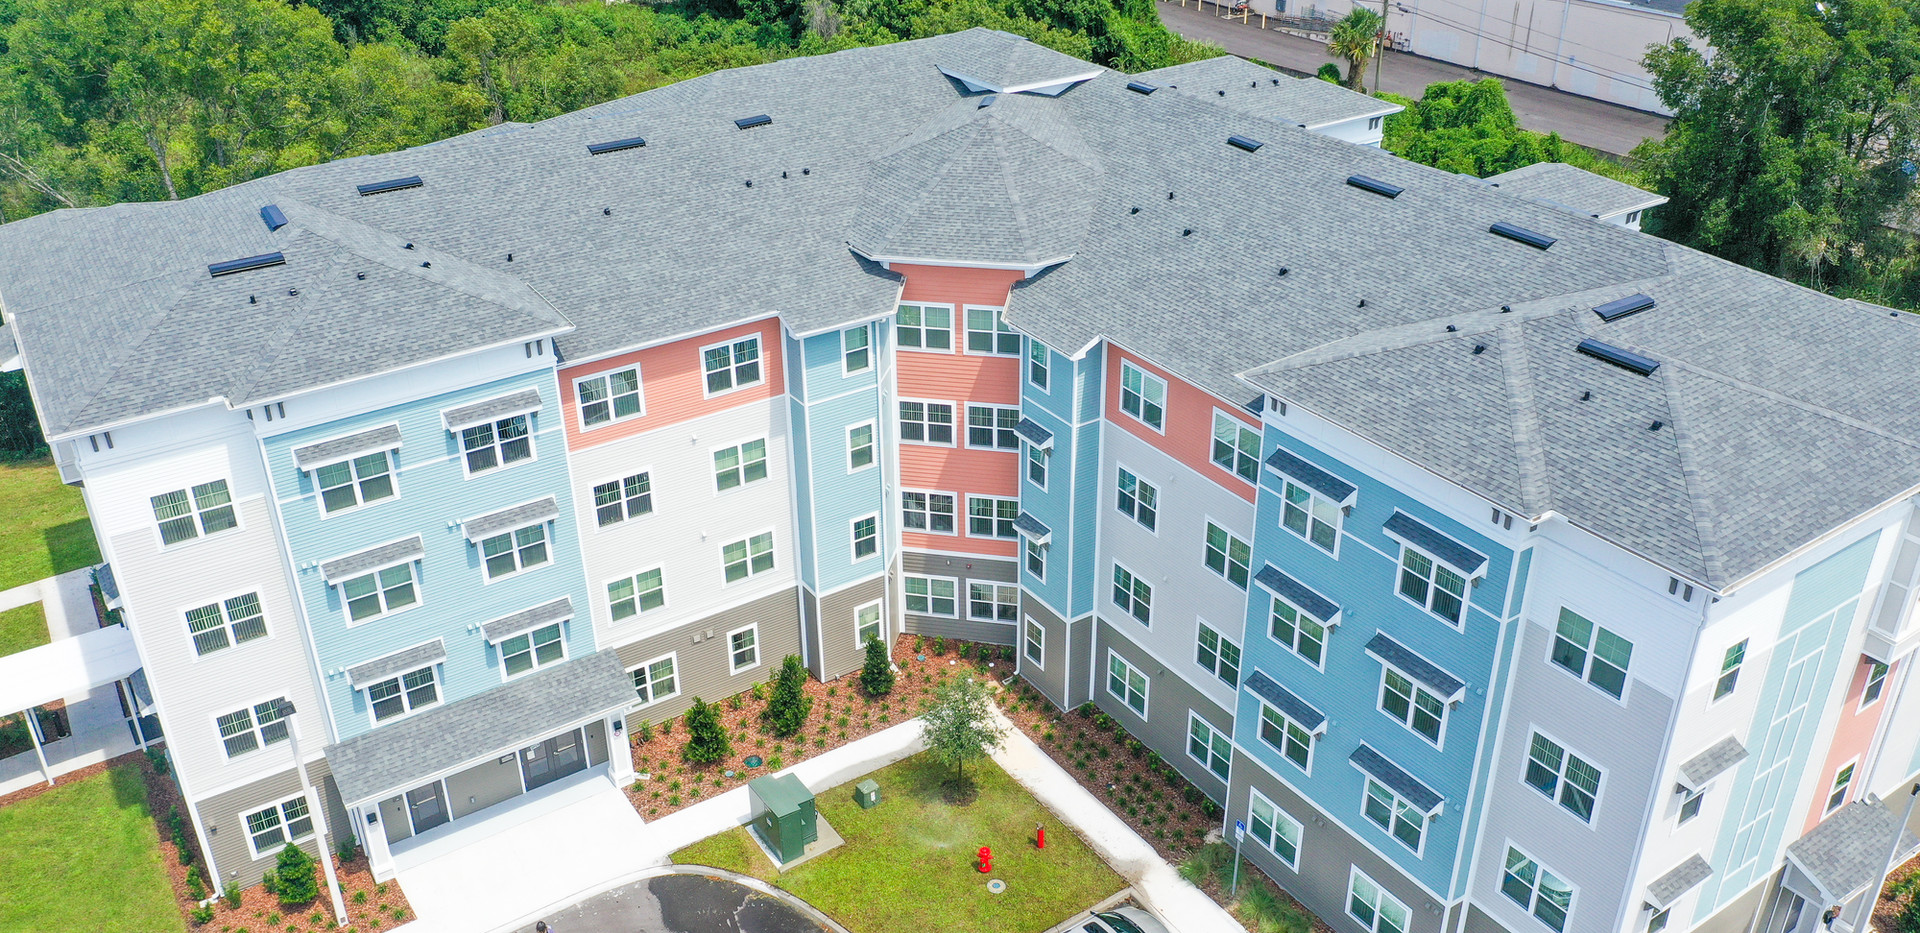 Banyan Cove Apartments Aerial Building Photo